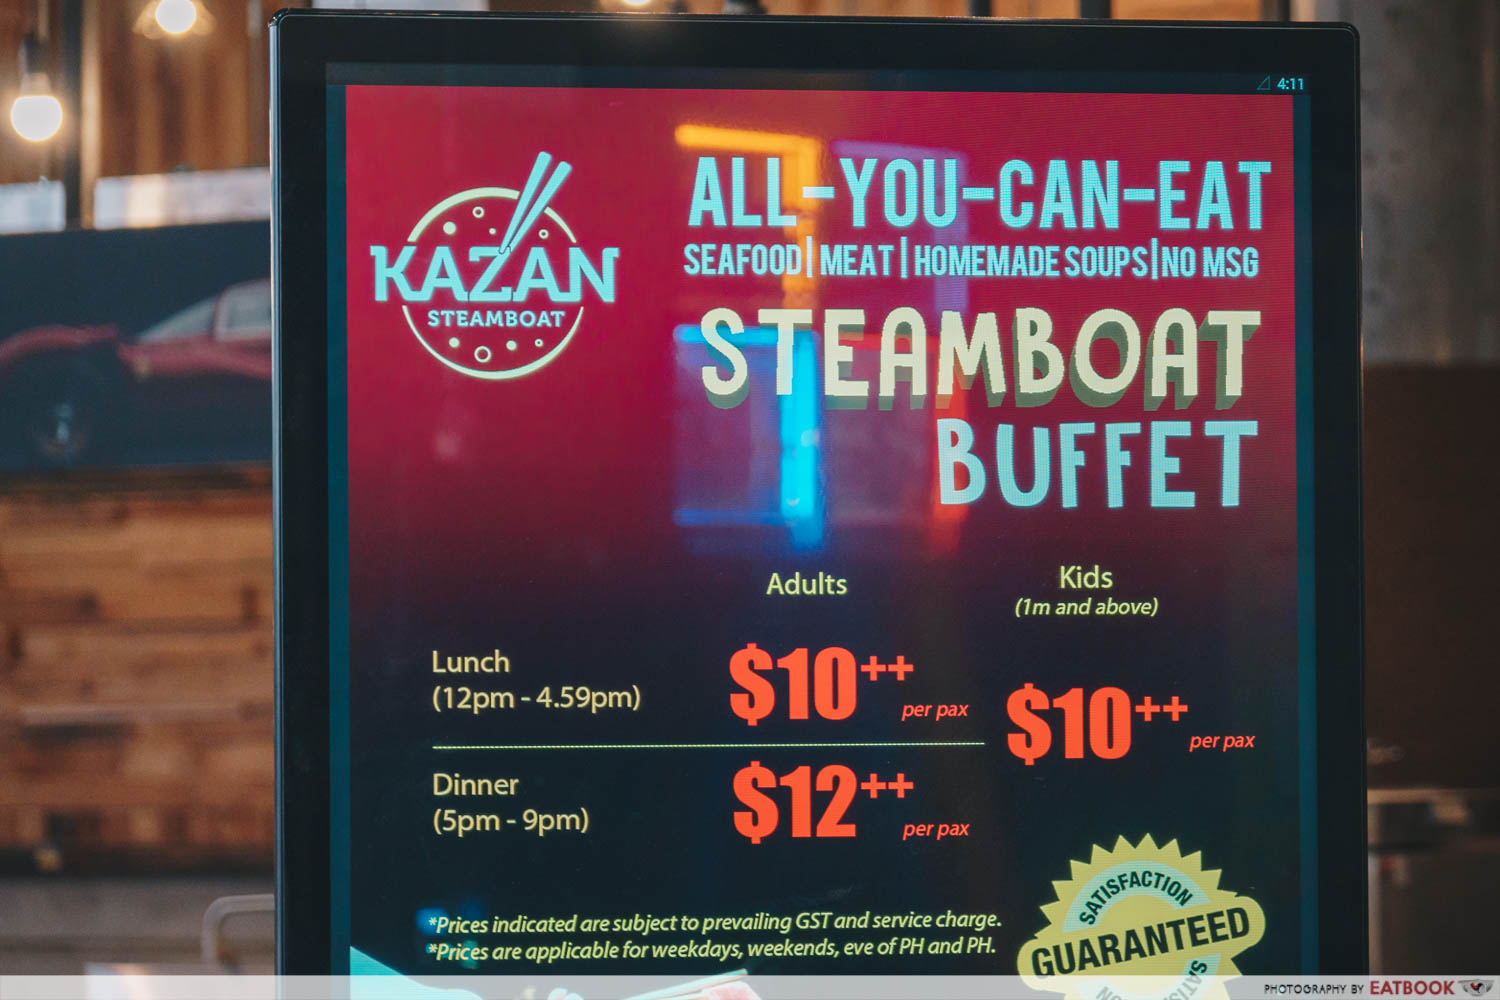 Kazan Steamboat - Prices